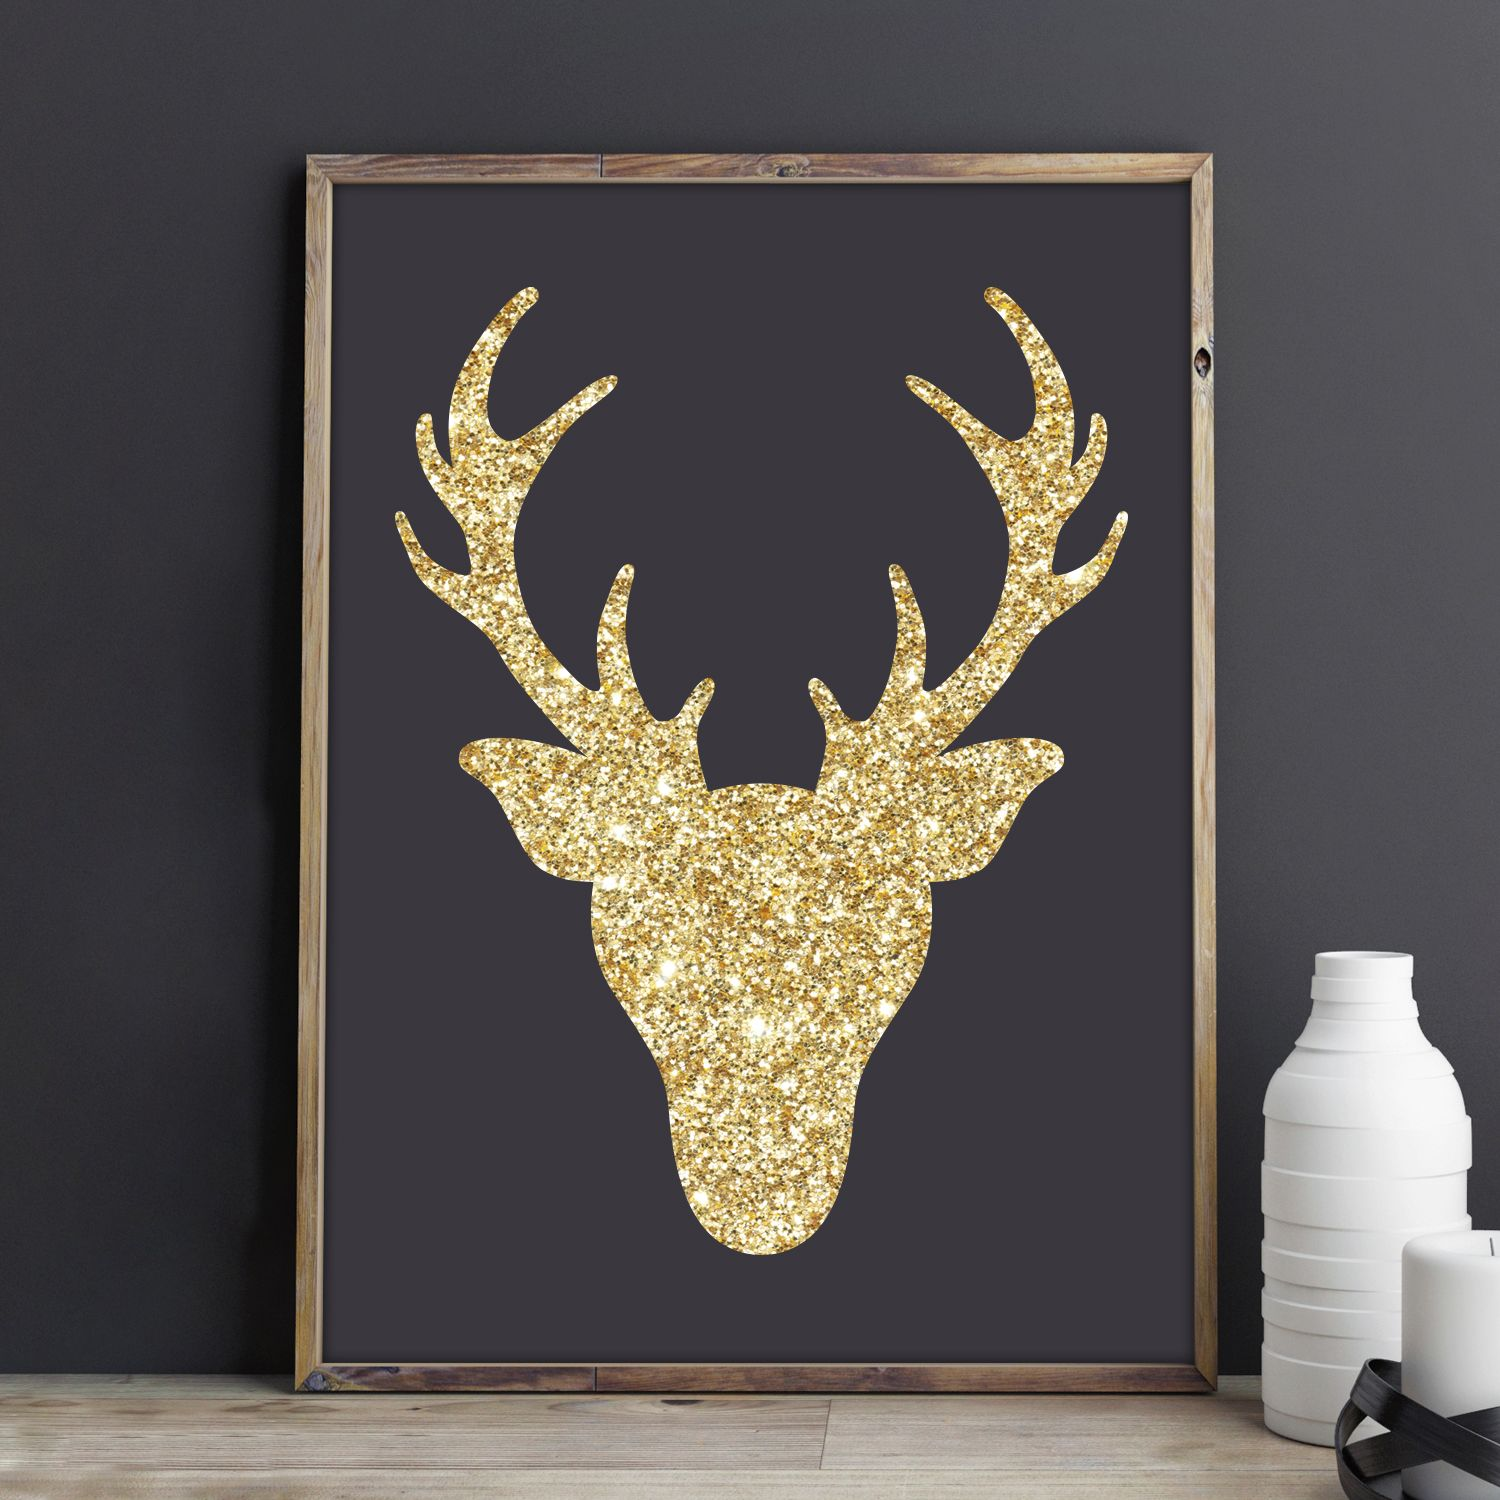 Create You Own Glitter Deer Artwork Using The Deer Head Die From AccuCut  Craft.